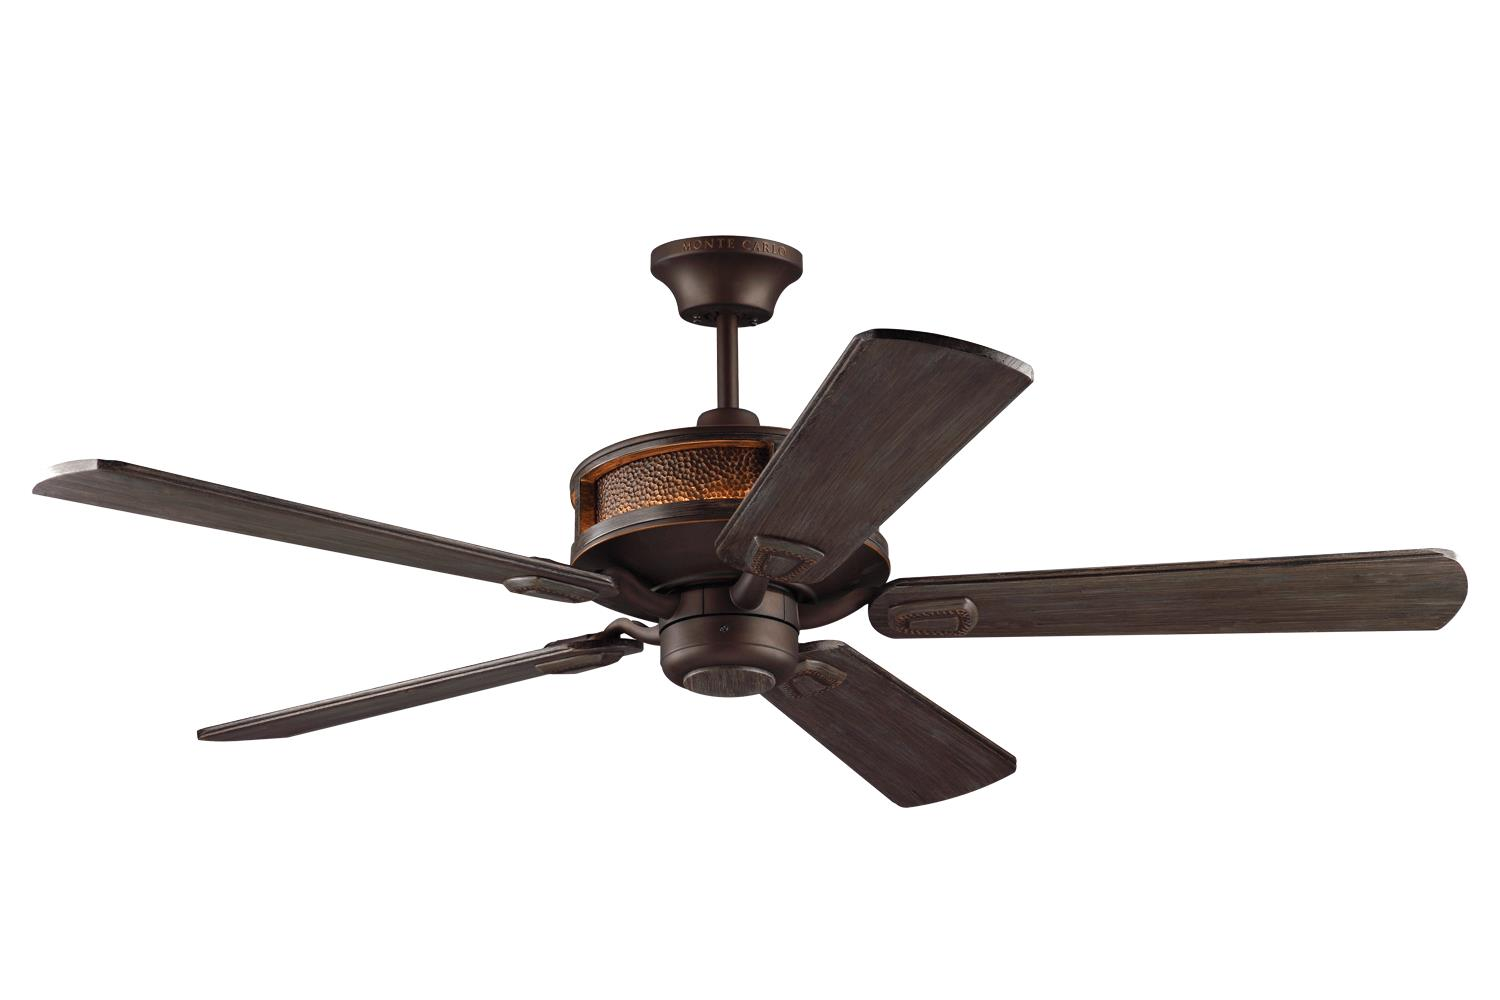 56 inchCeiling Fan from the Artizan collection by Monte Carlo 5AZR56RB